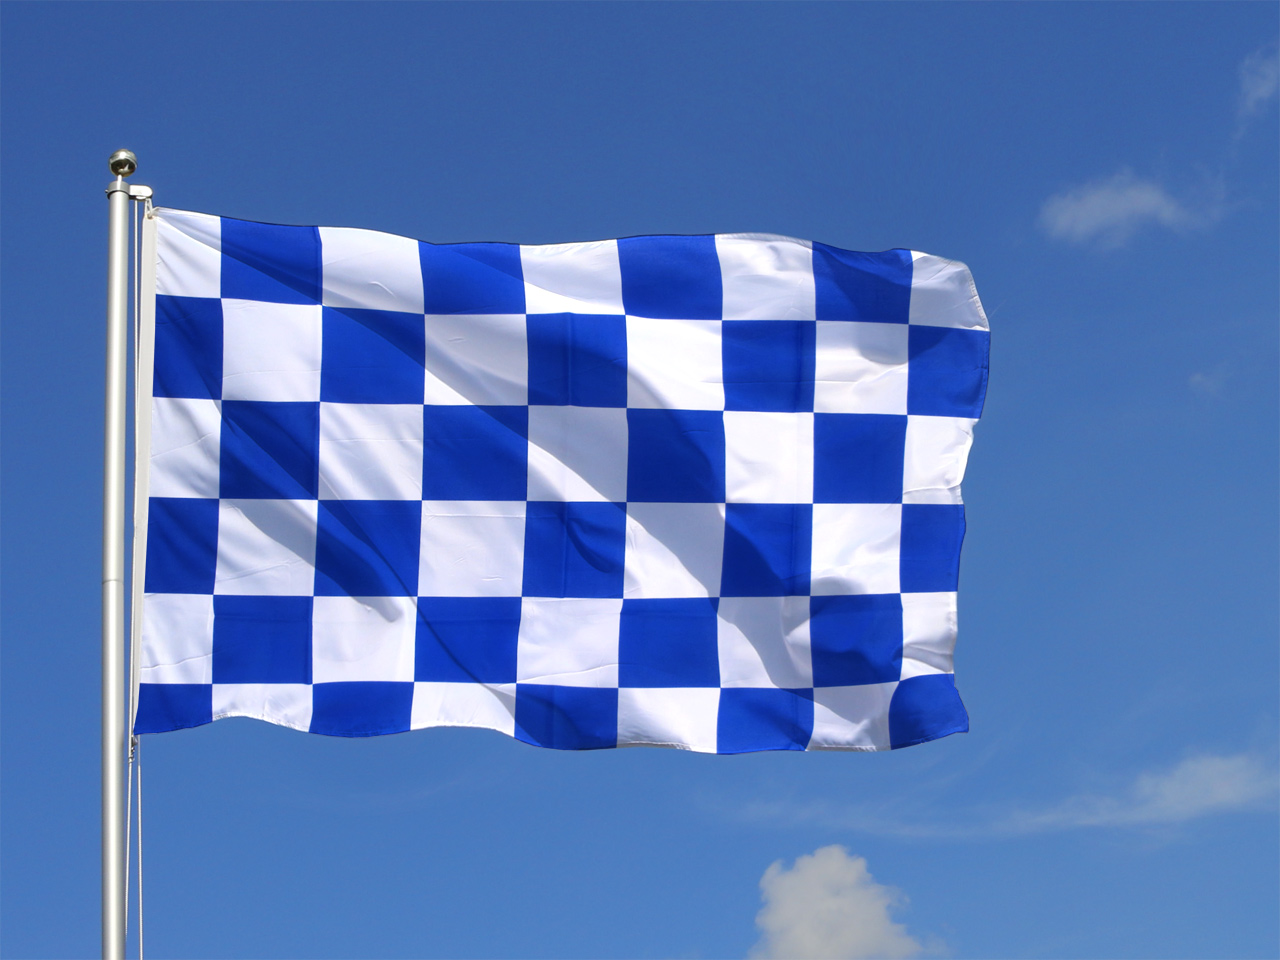 Large Flag Checkered blue-white - 5x8 ft - Royal-Flags